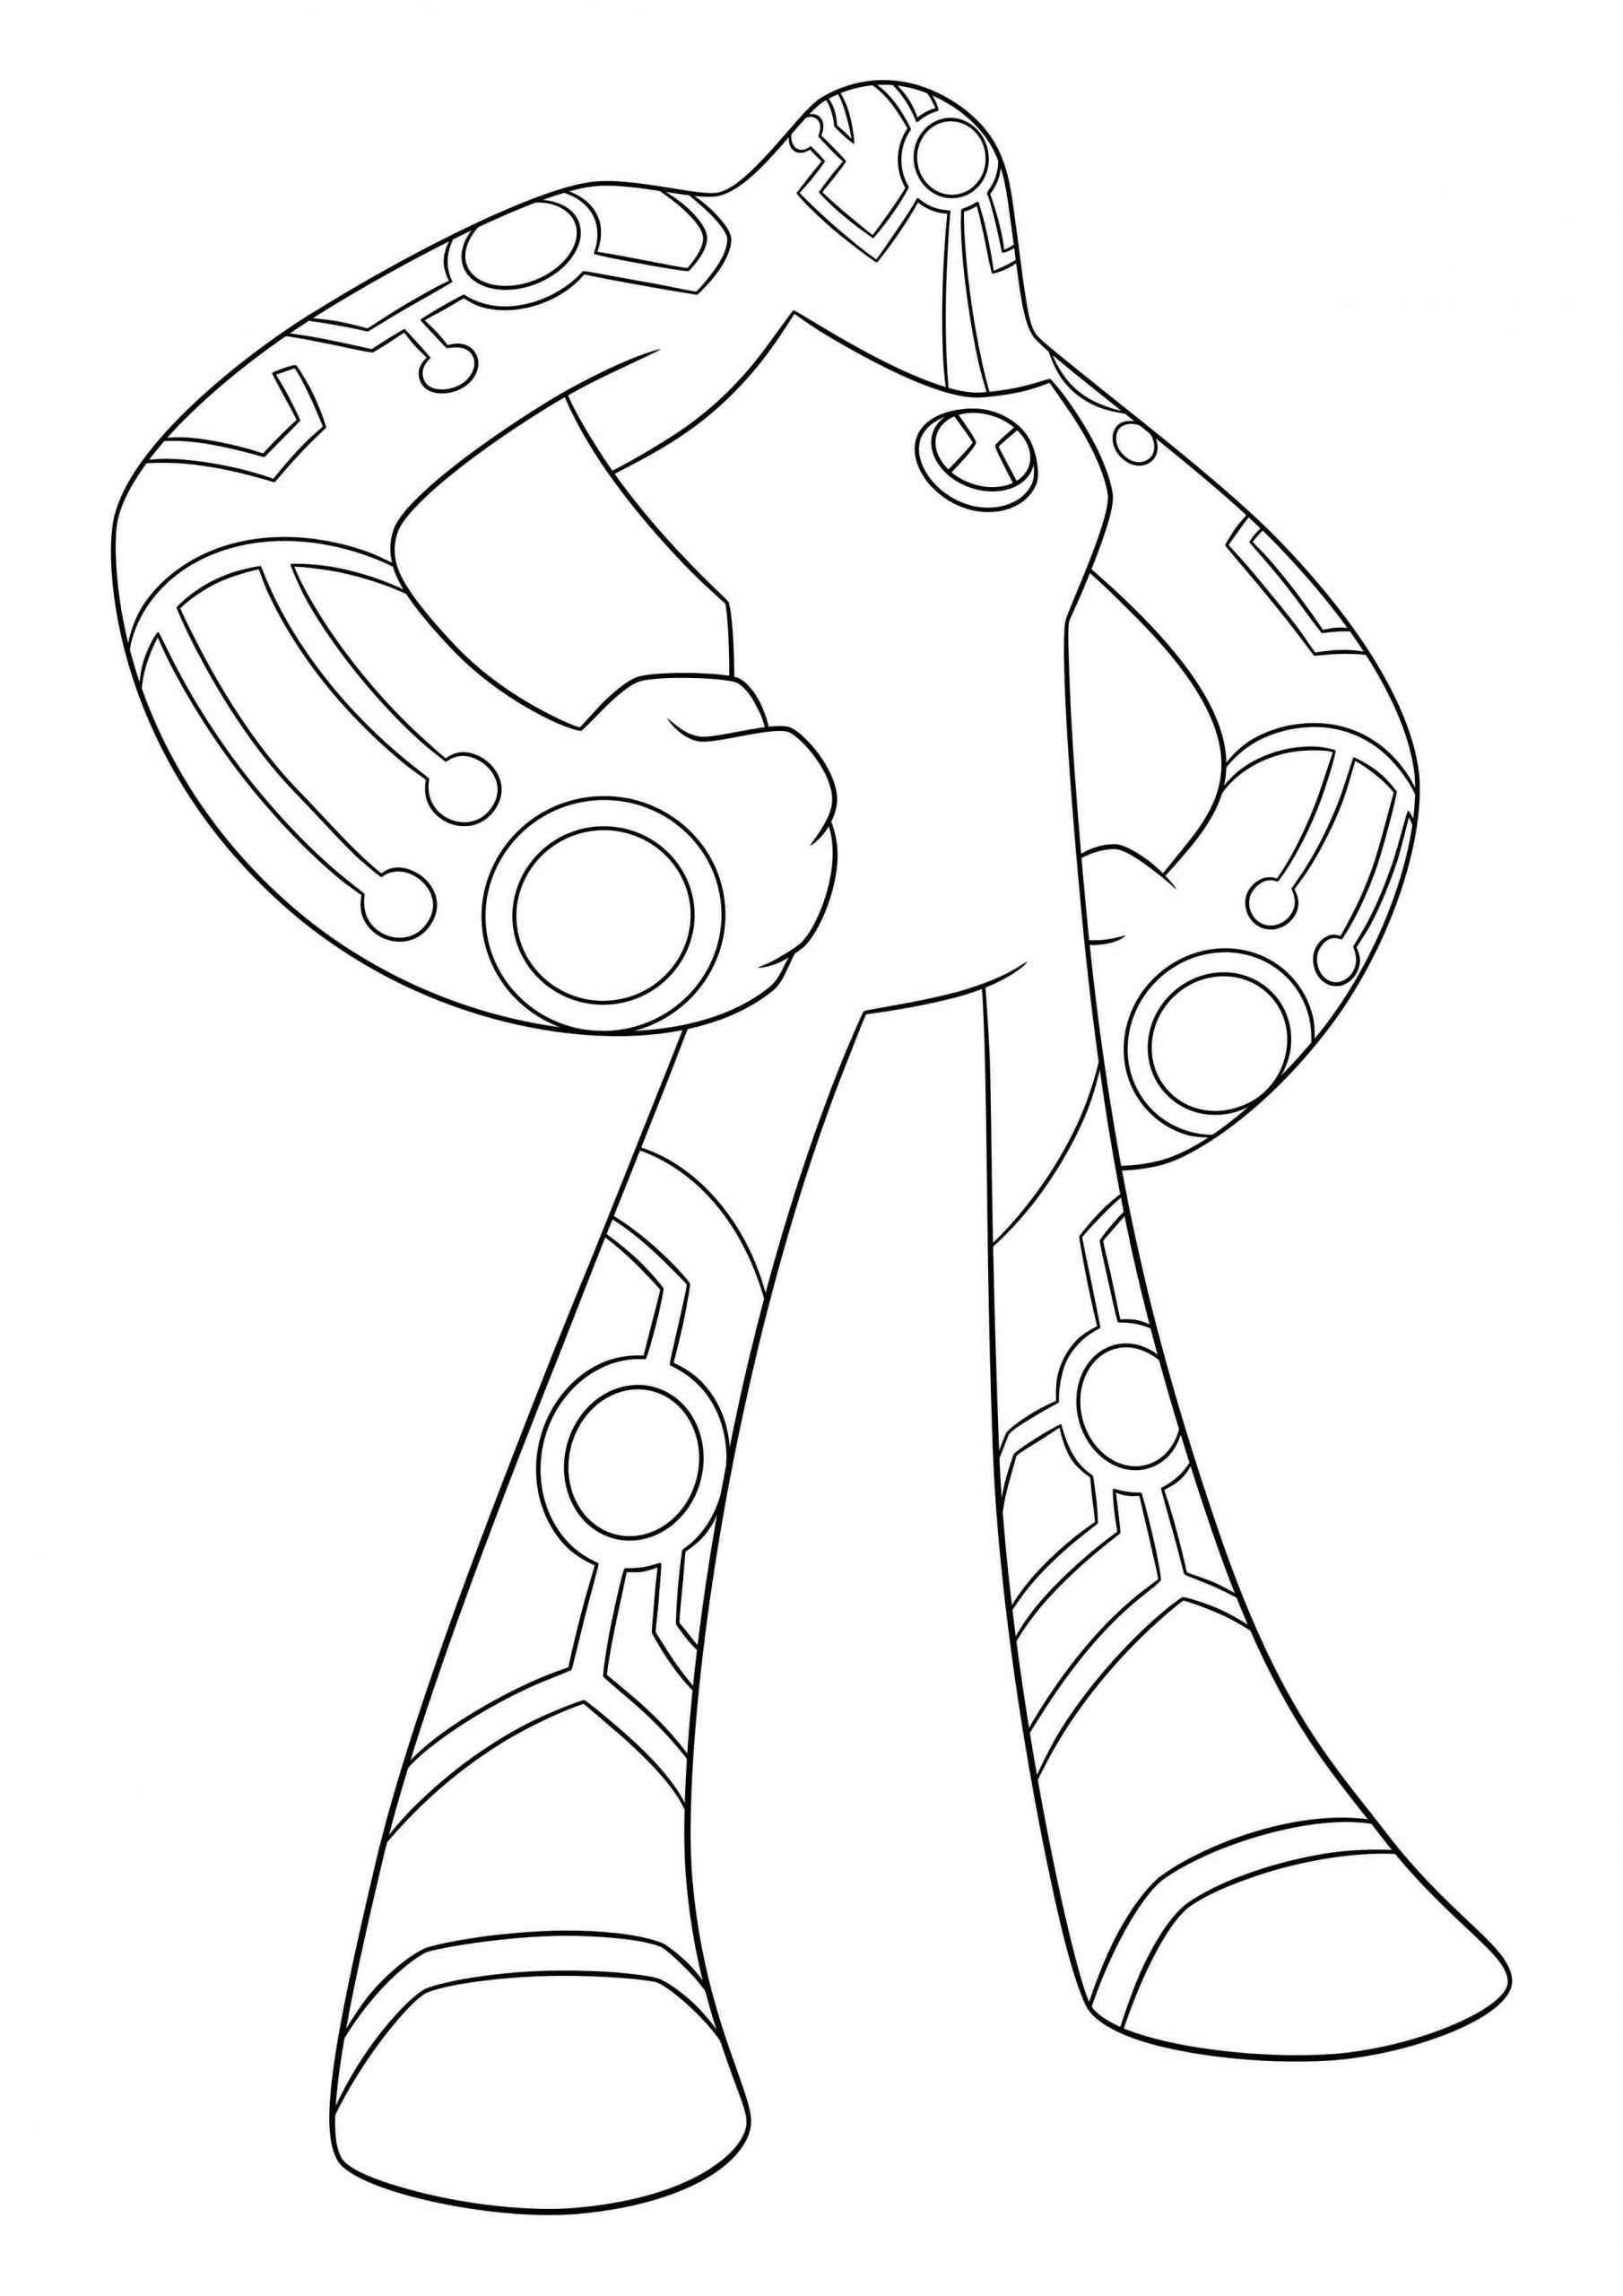 Ben 10 Coloring Pages New Coloring Ben 10 Upgrade Coloring Pages In 2020 Rapunzel Coloring Pages Coloring Pages Precious Moments Coloring Pages